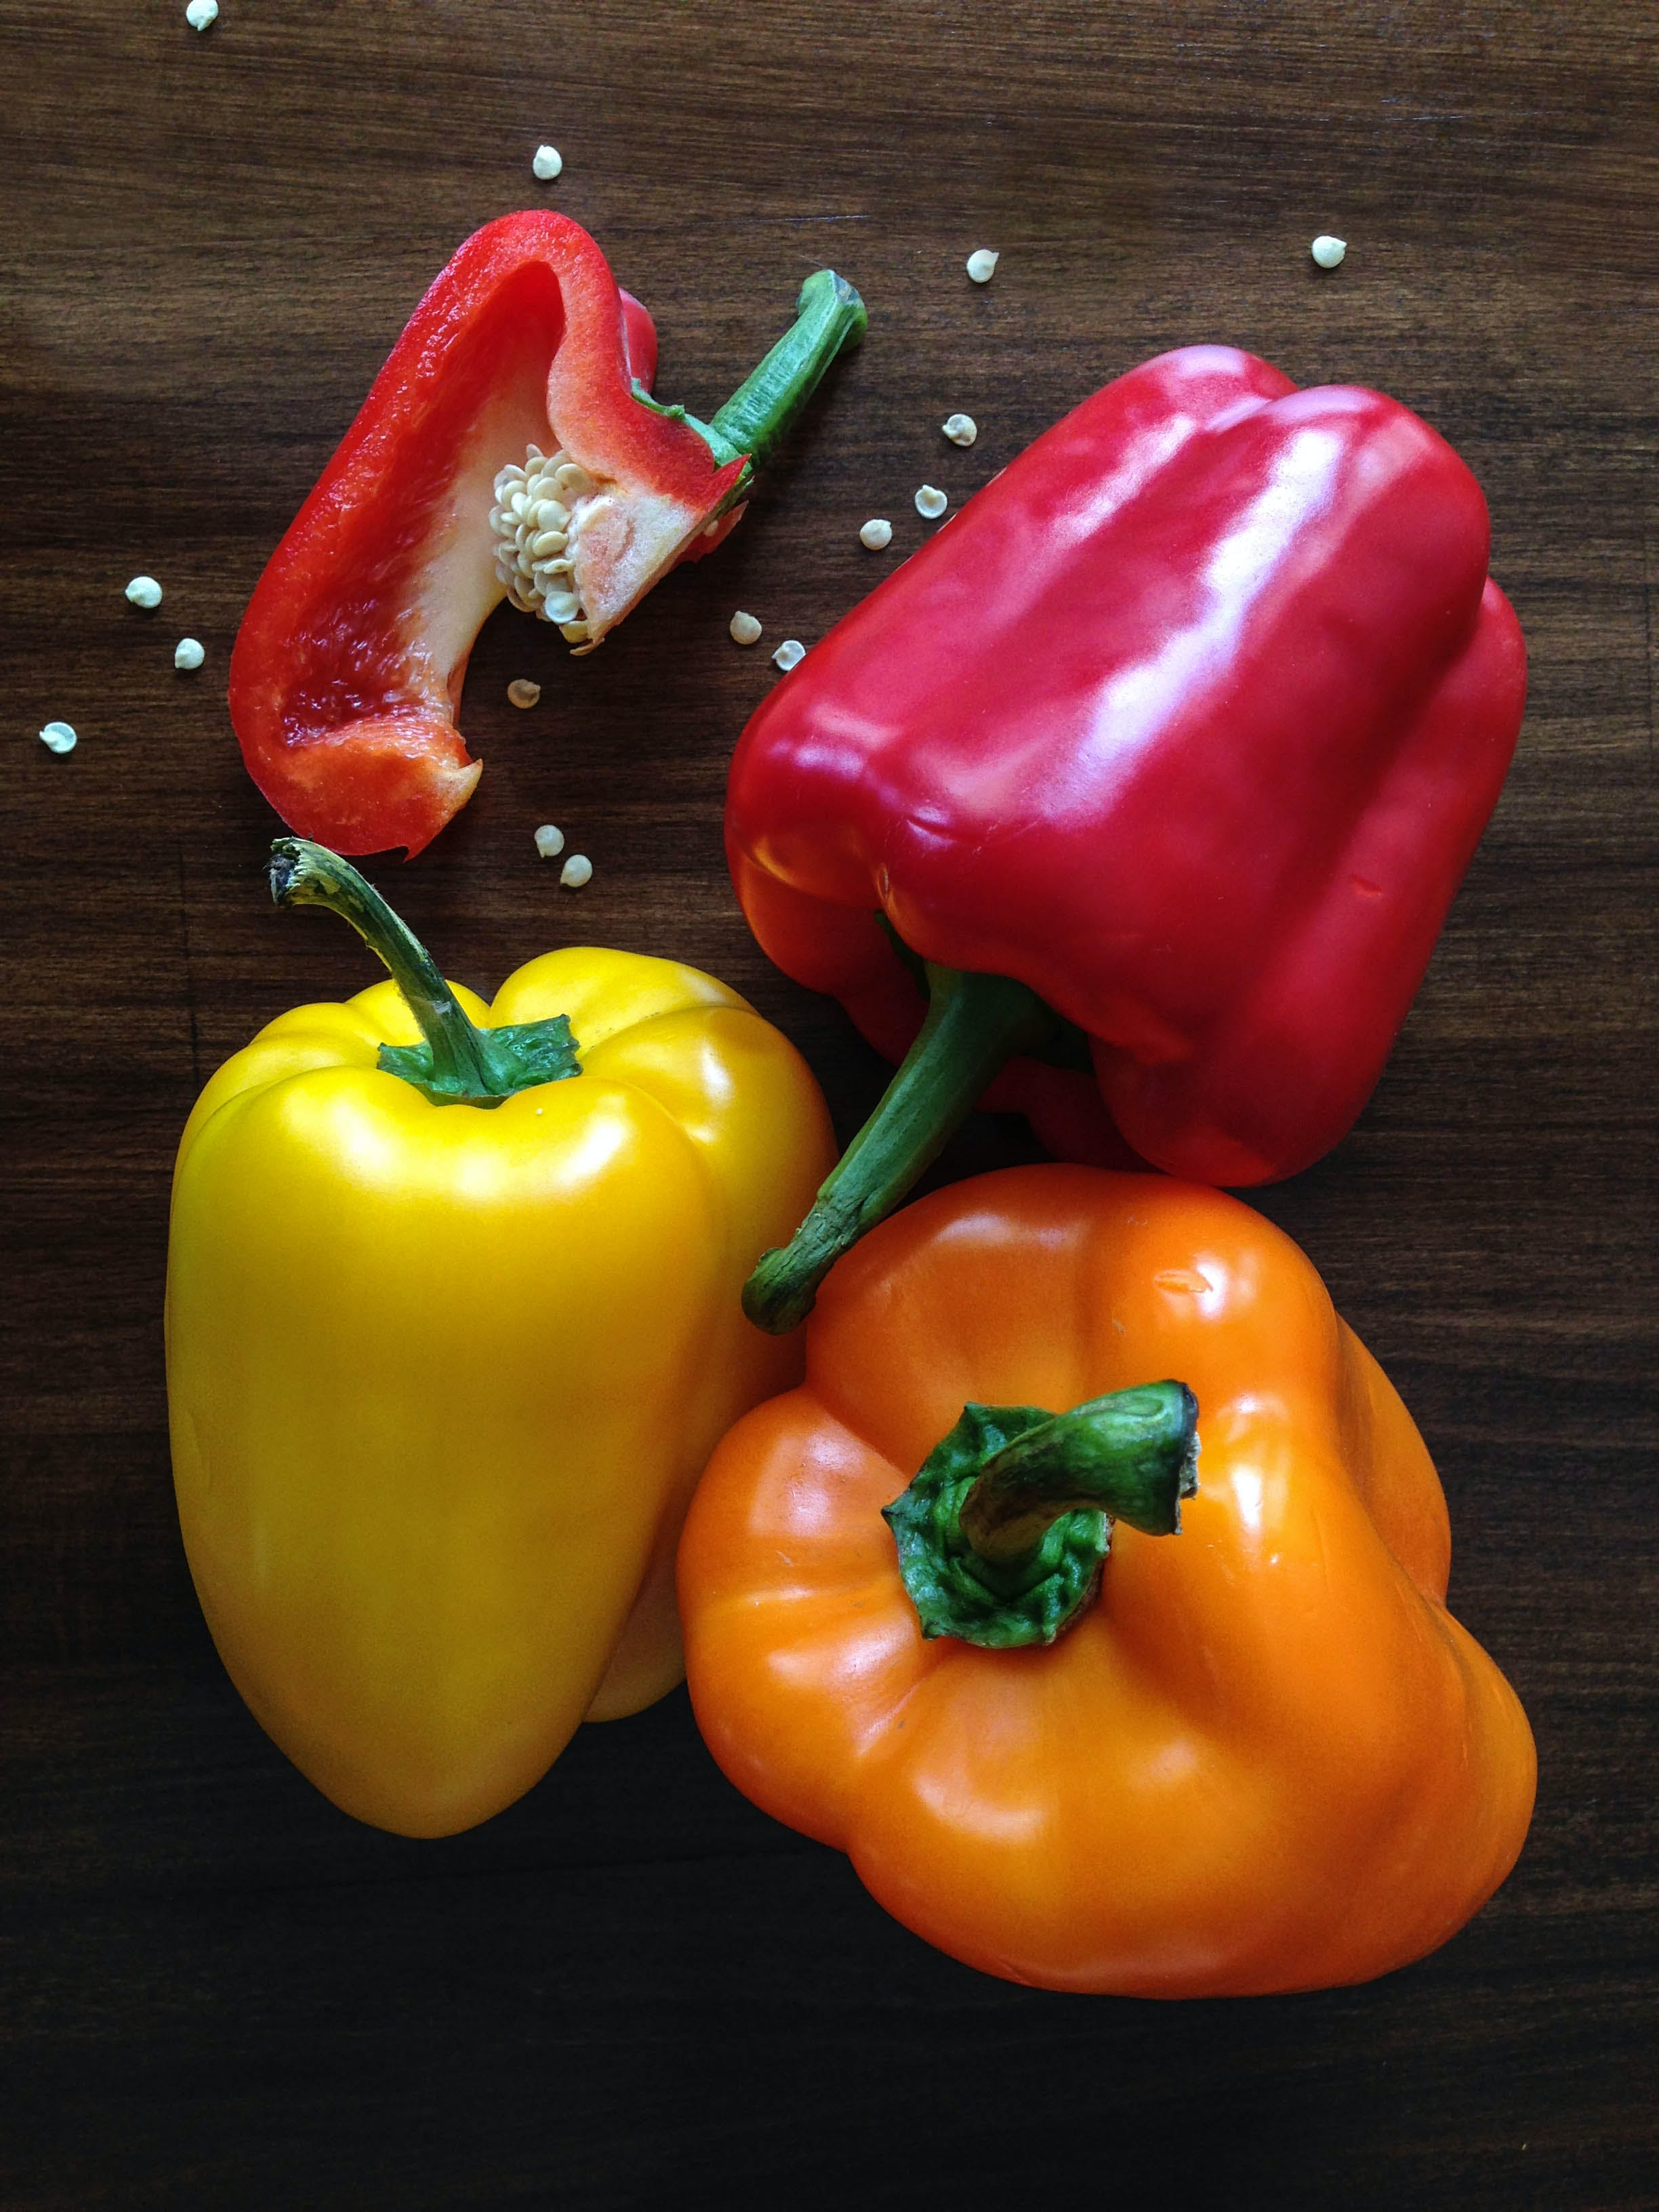 Free stock photo of food, healthy, vegetables, peppers